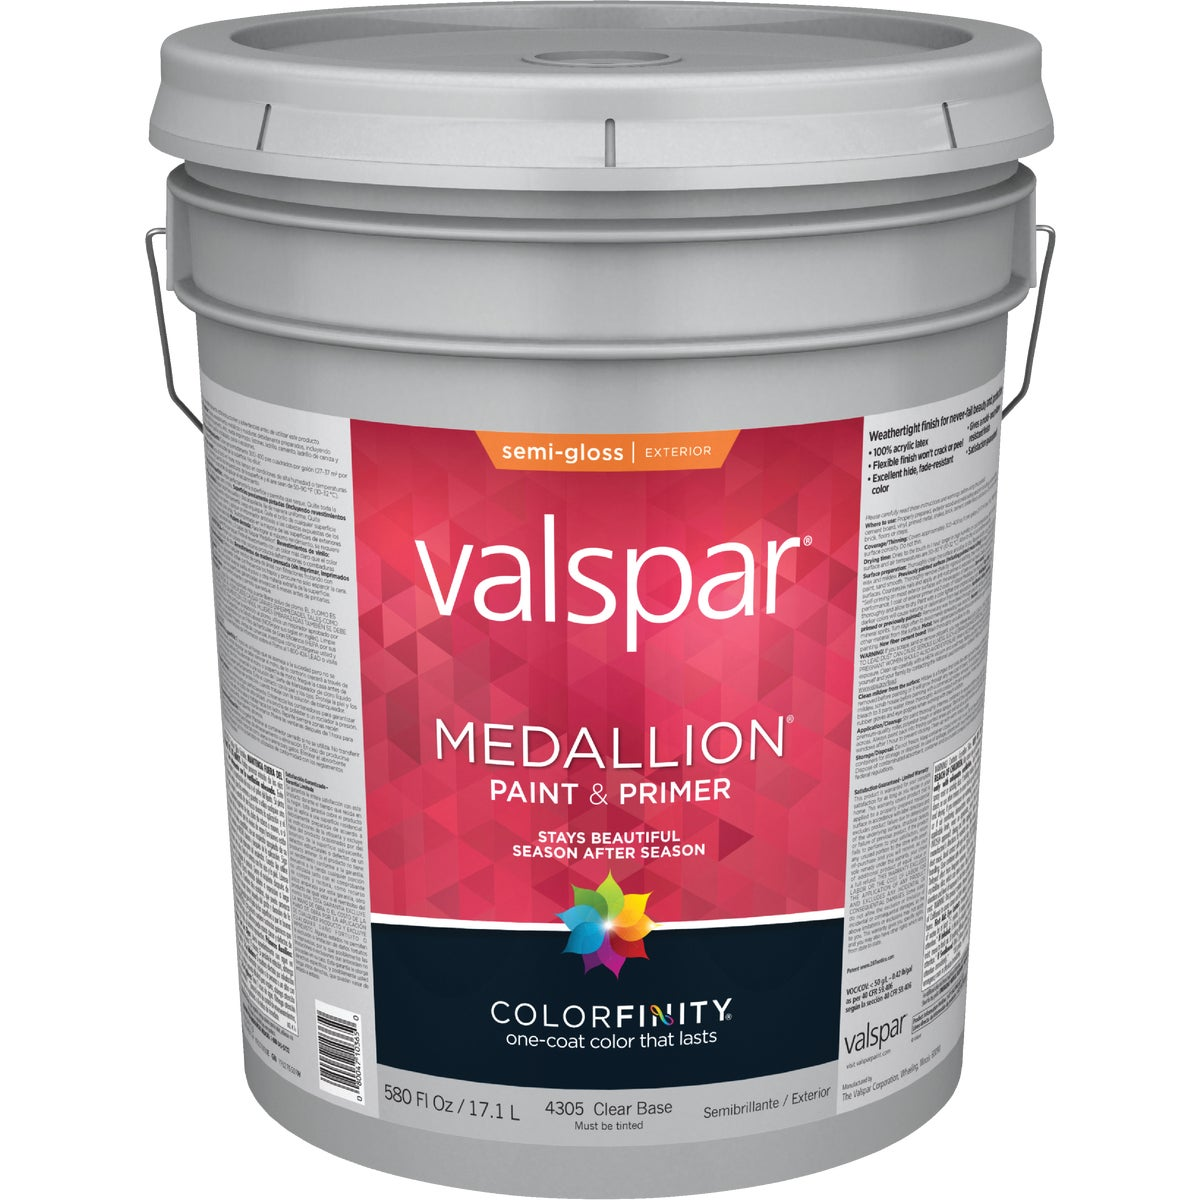 EXT S/G CLEAR BS PAINT - 027.0004305.008 by Valspar Corp